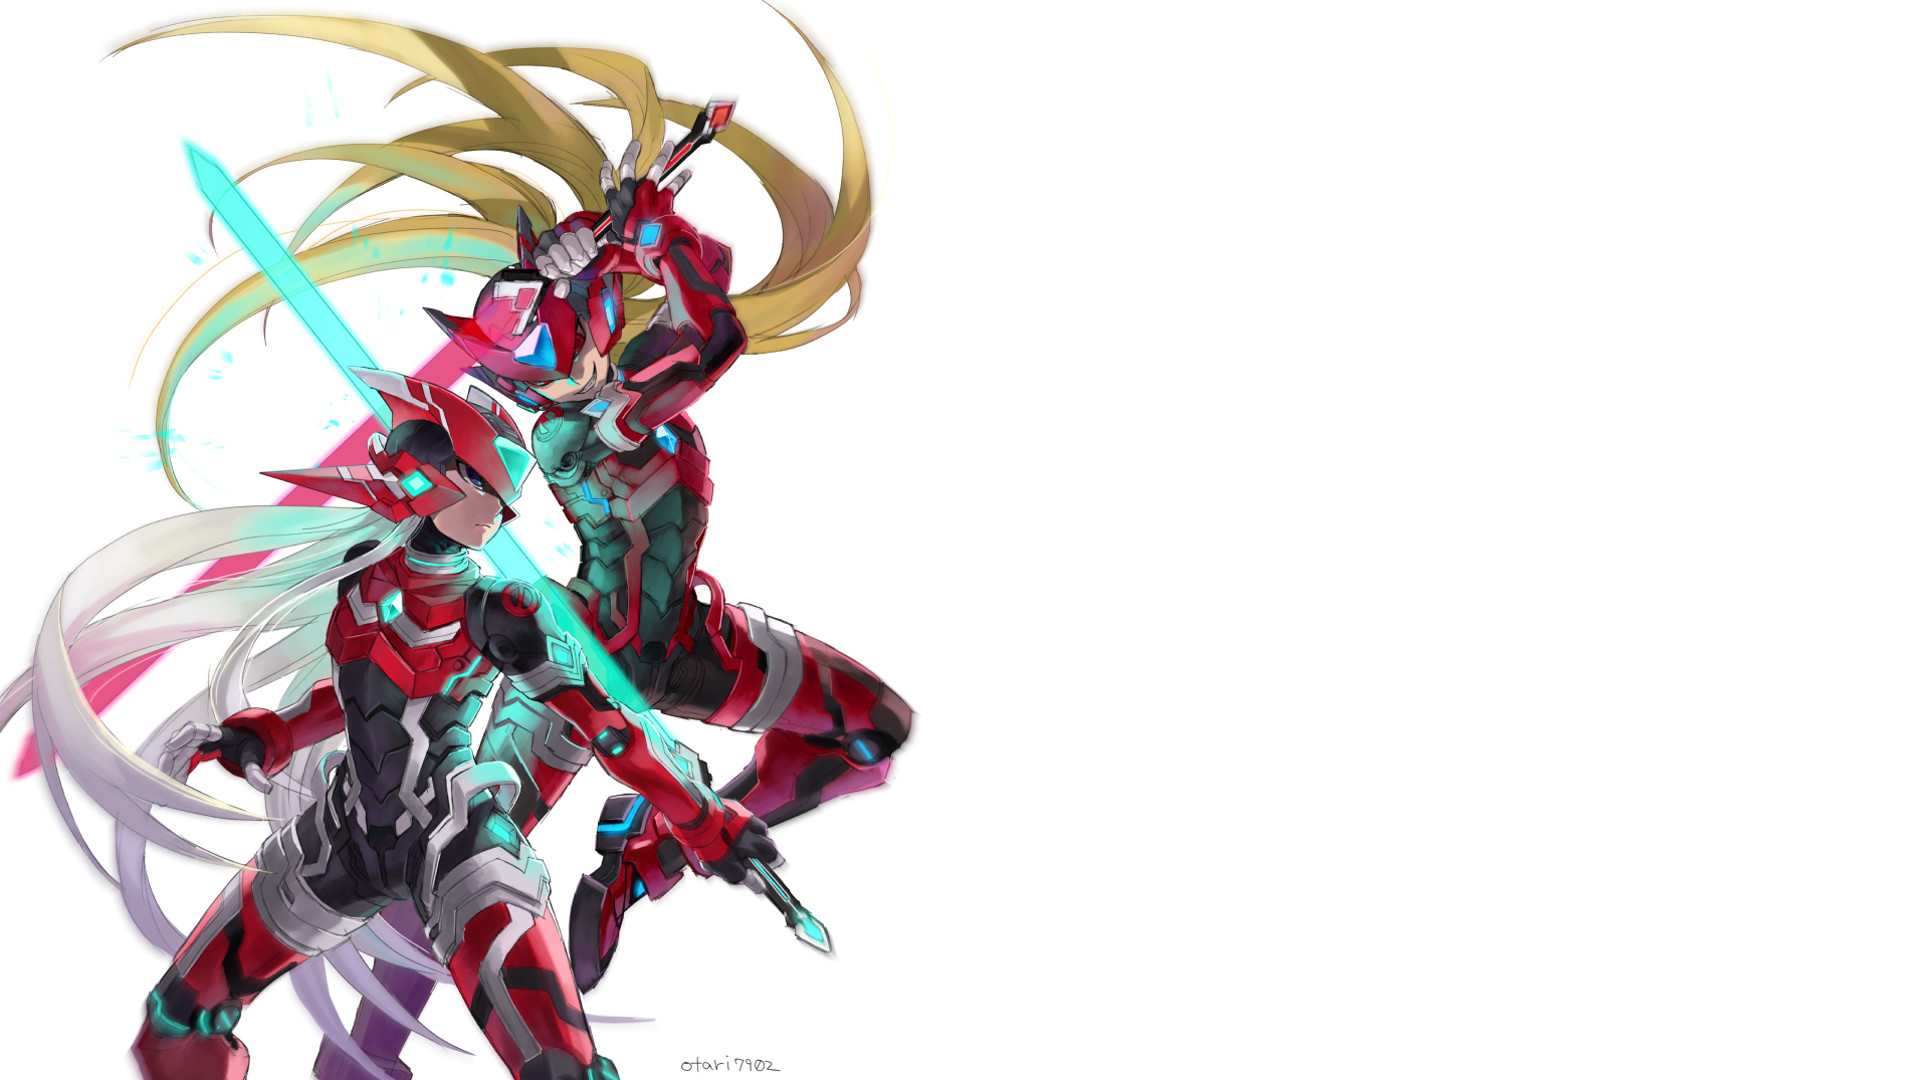 Monster Hunter Girl Wallpaper 1440 Megaman Zero Wallpaper 63 Images